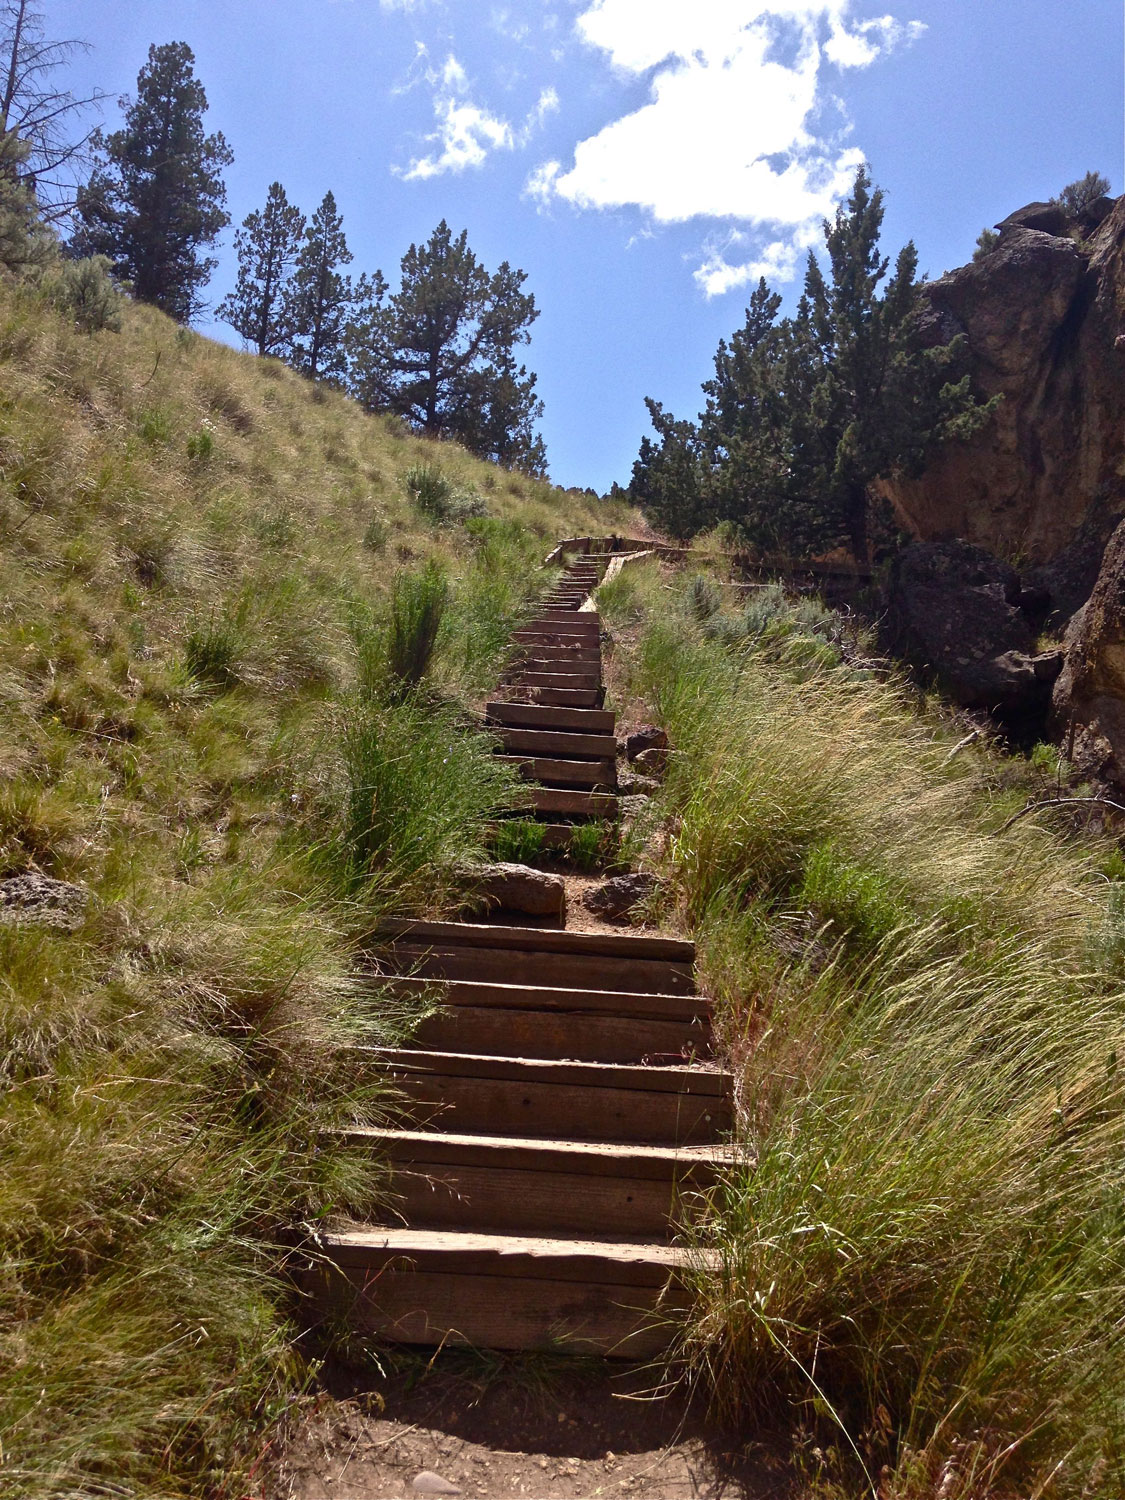 Scree trails yield to more stairs as the Rope-de-Dope Trail continues up to the top of the canyon at Smith Rock State Park.